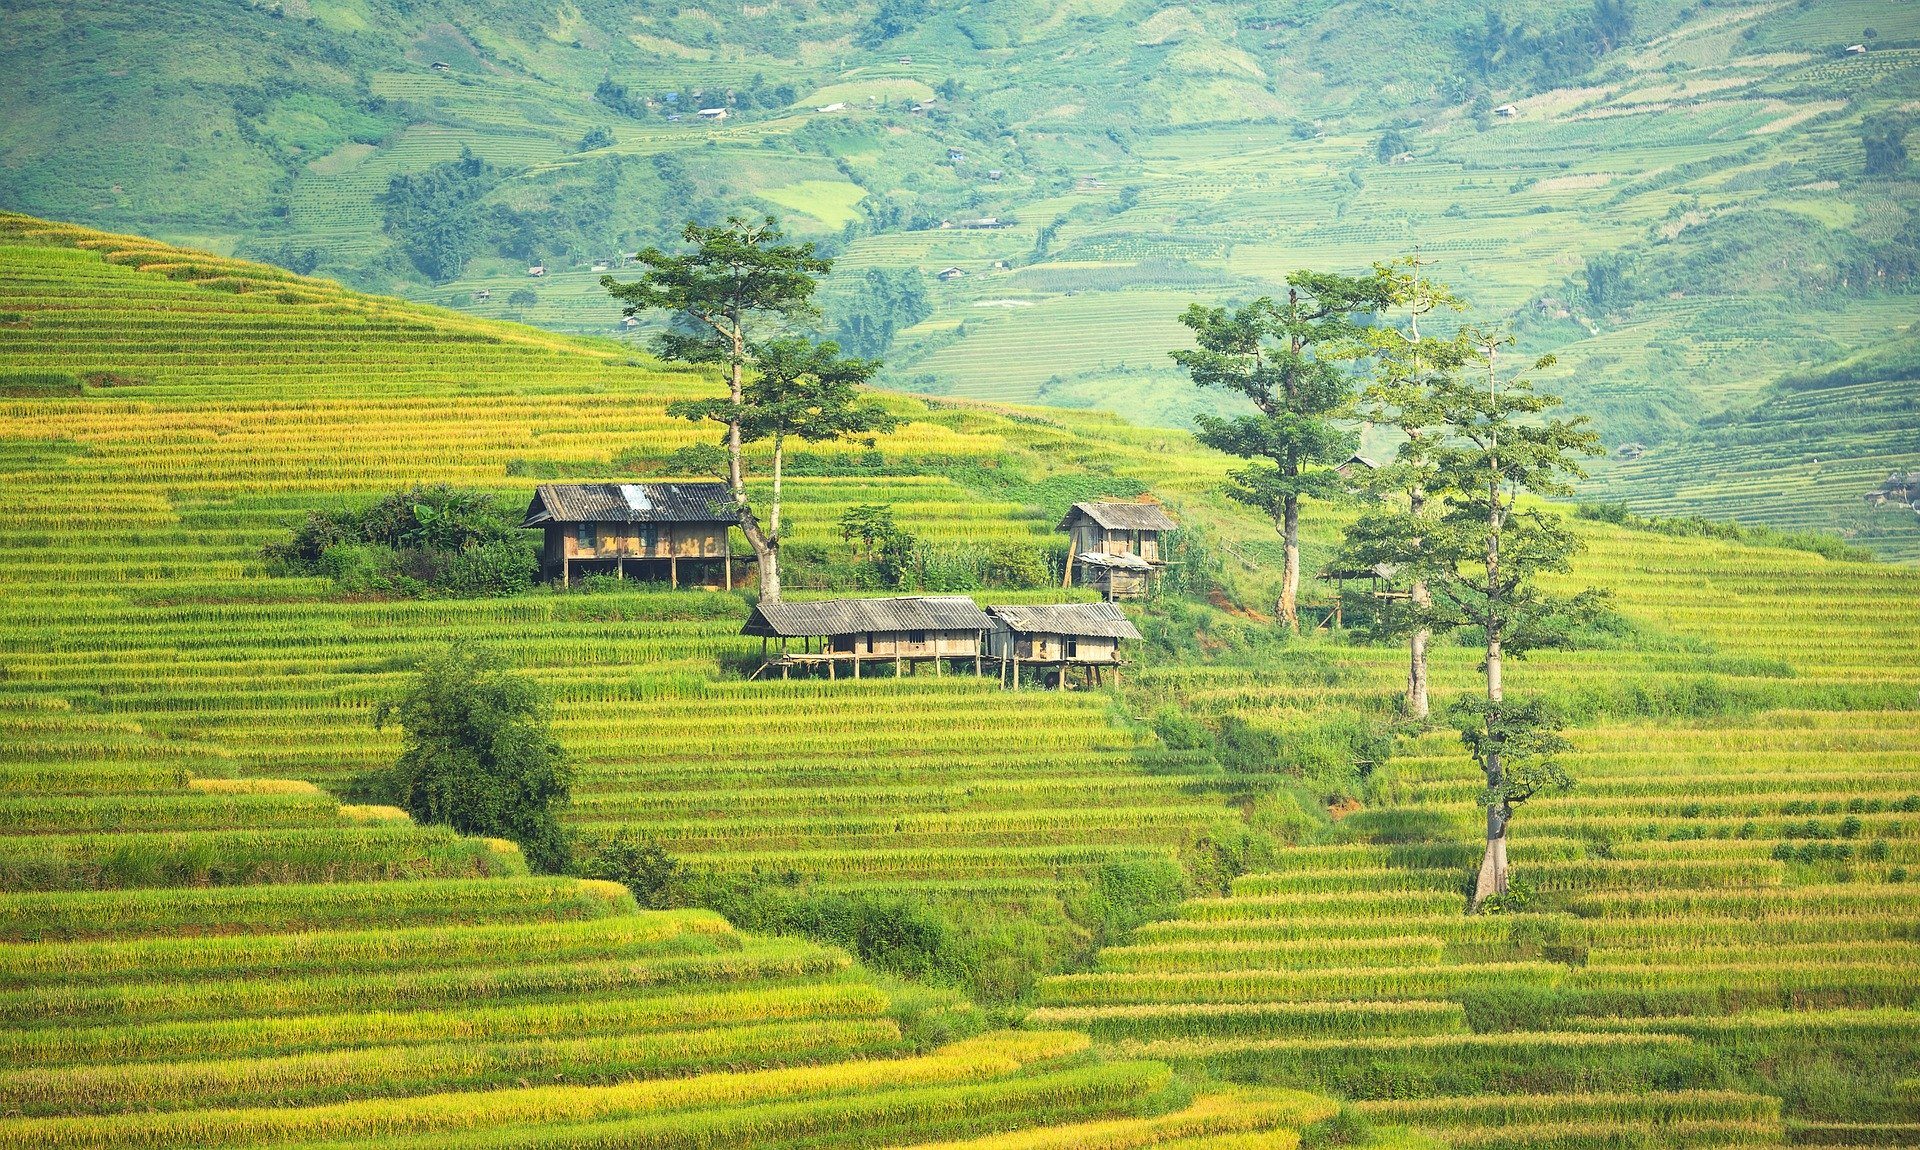 Rice terraces in Sapa.